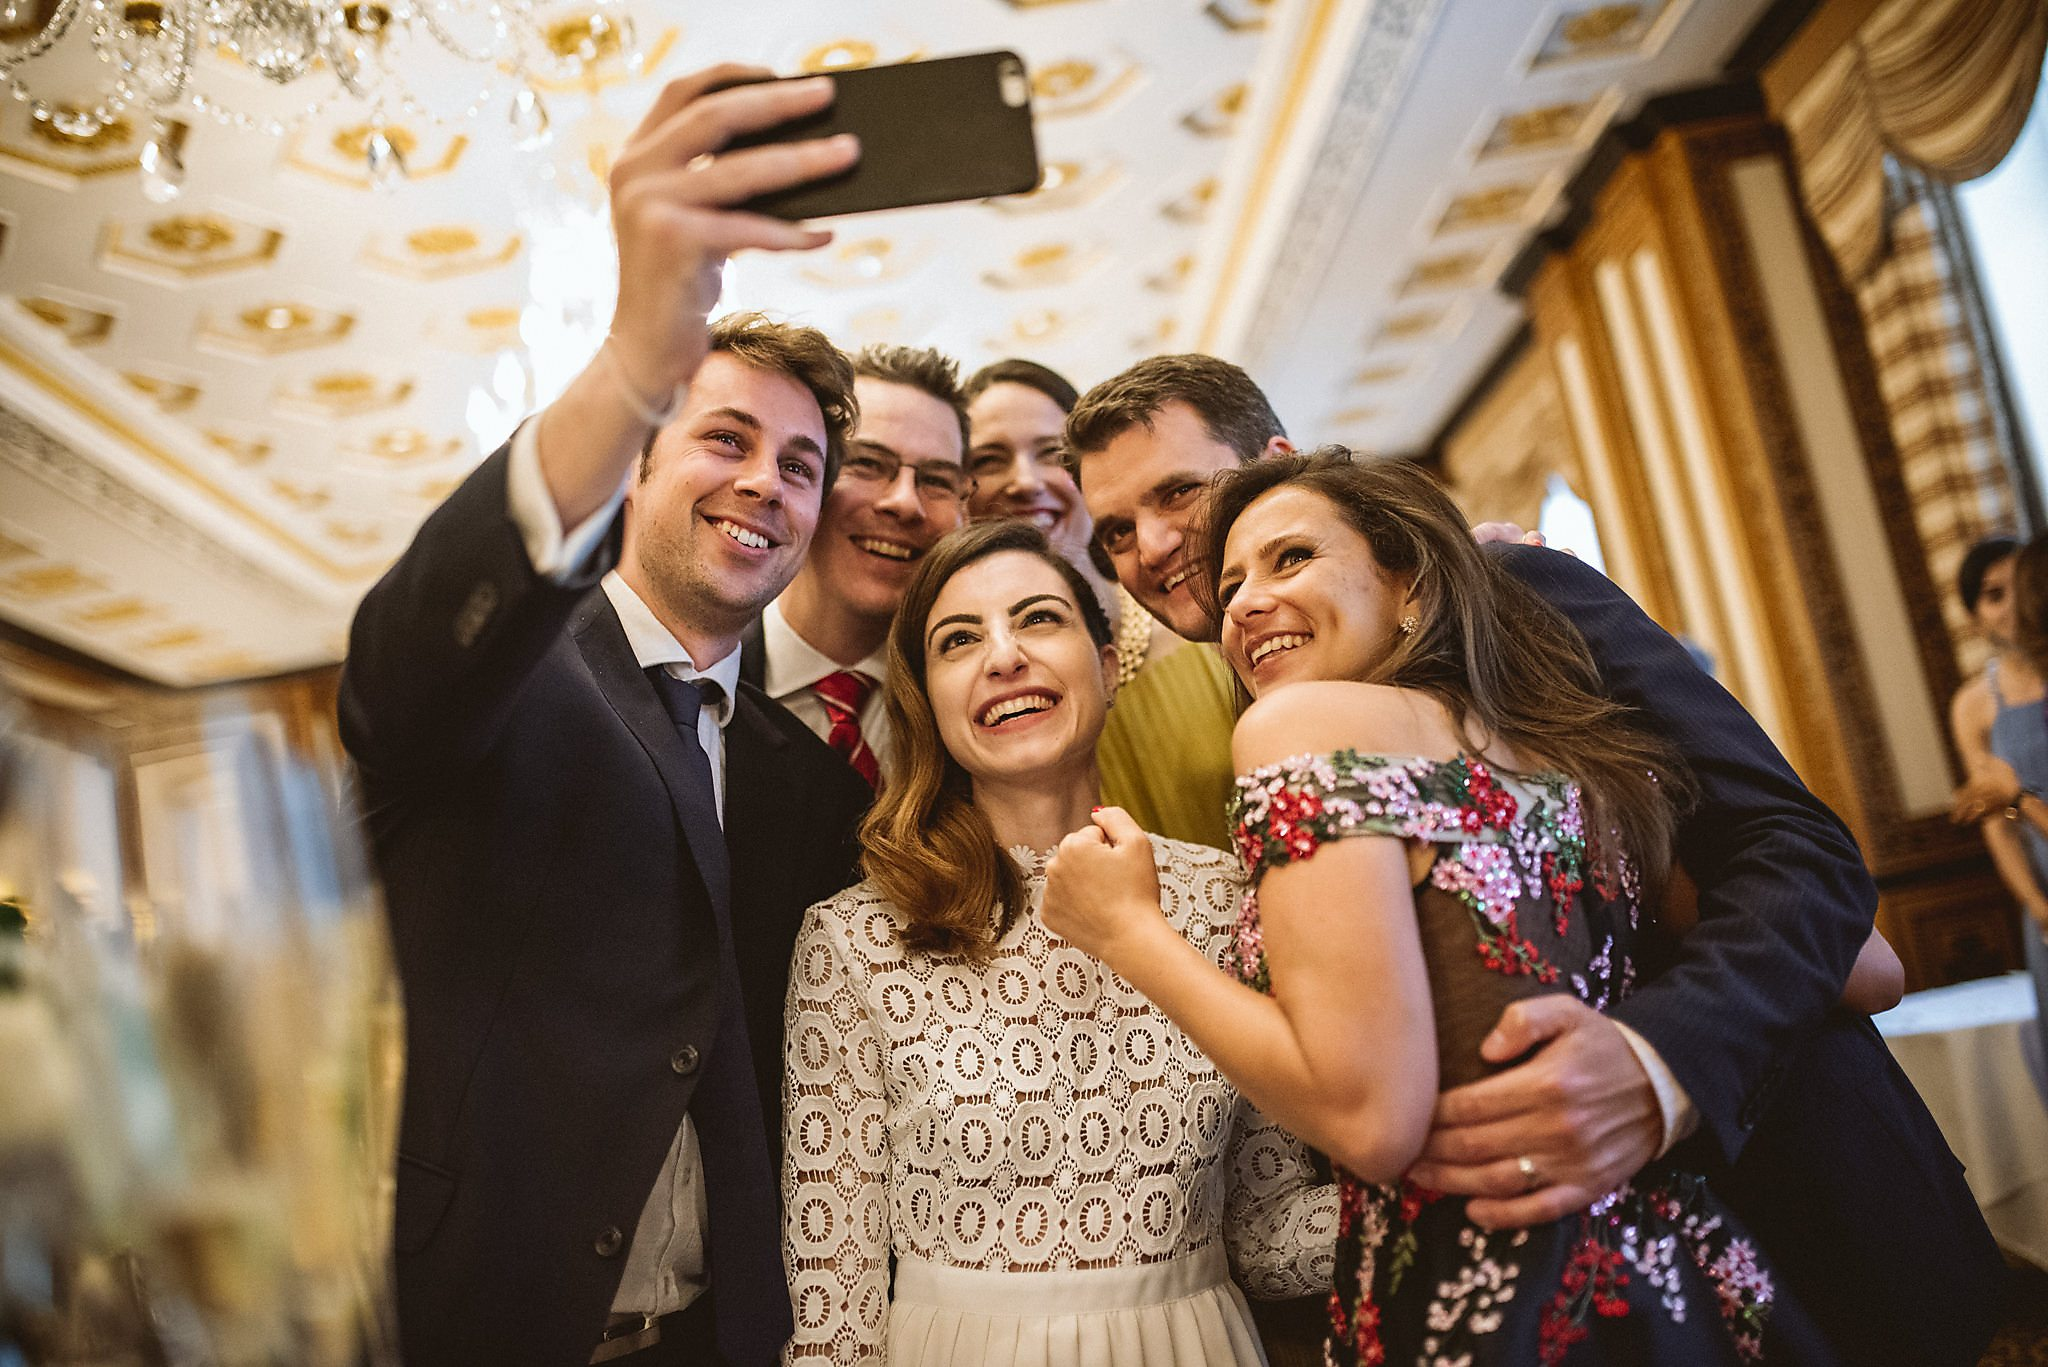 Bride Jo poses for a selfie with a group of guests at the Lanesborough Hotel